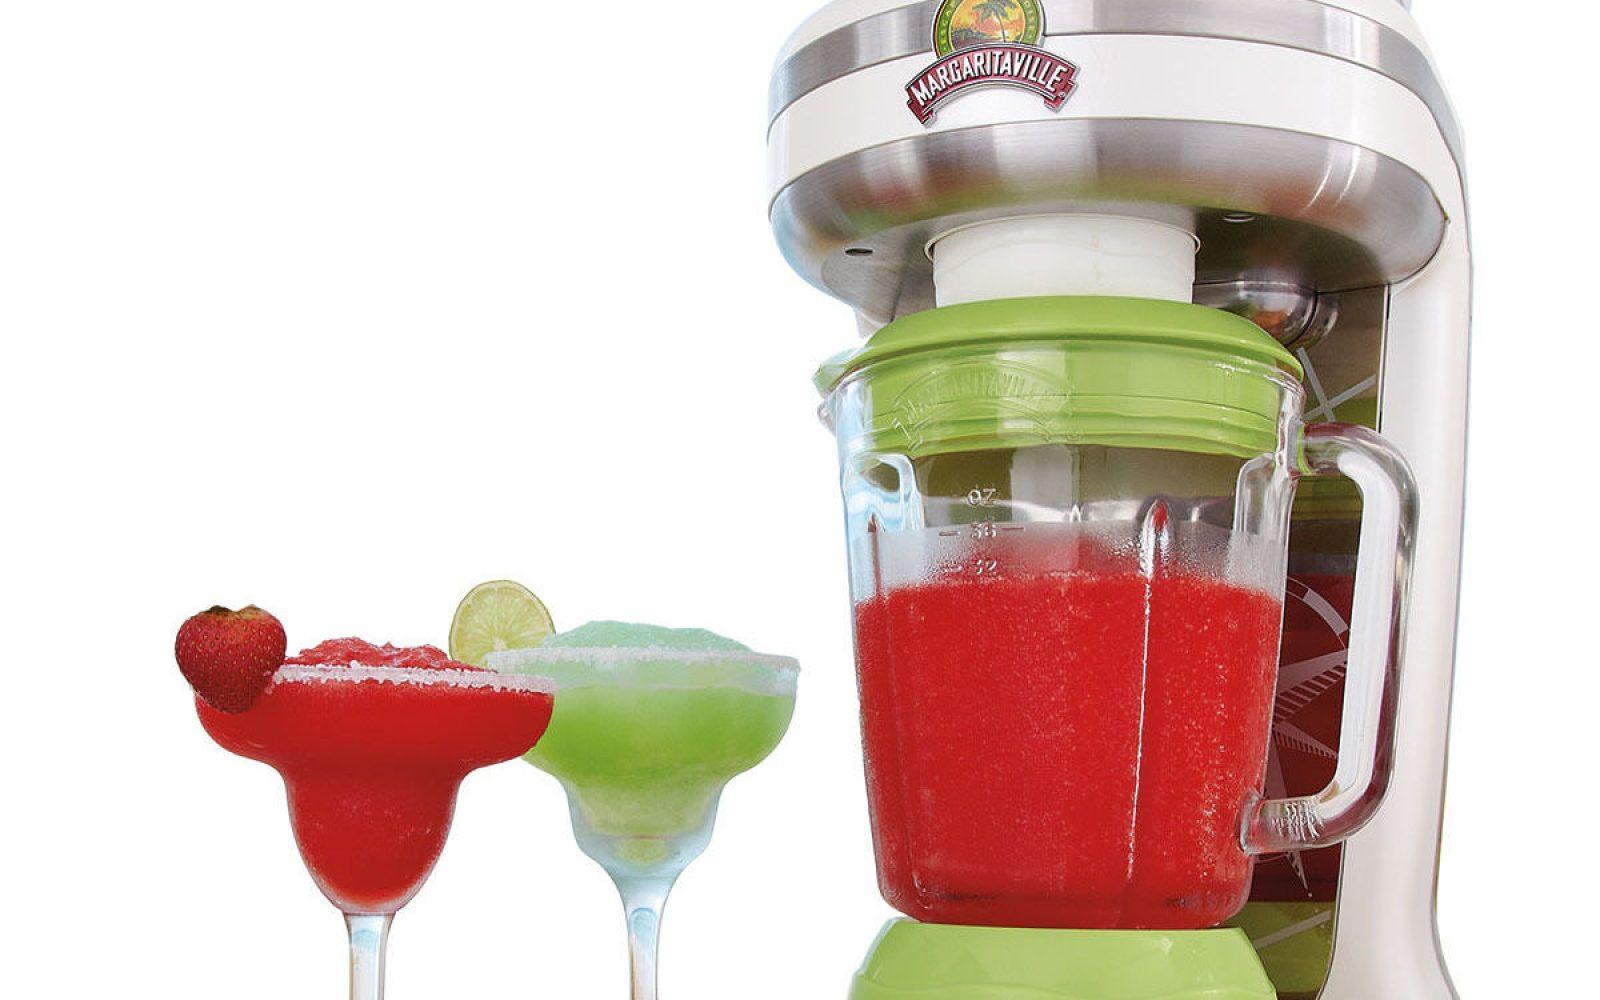 7502f08e5a Home: Margaritaville frozen drink maker $160 (Reg. $300), Astro 12V  portable jump starter kit $73 (Reg. $84+), more